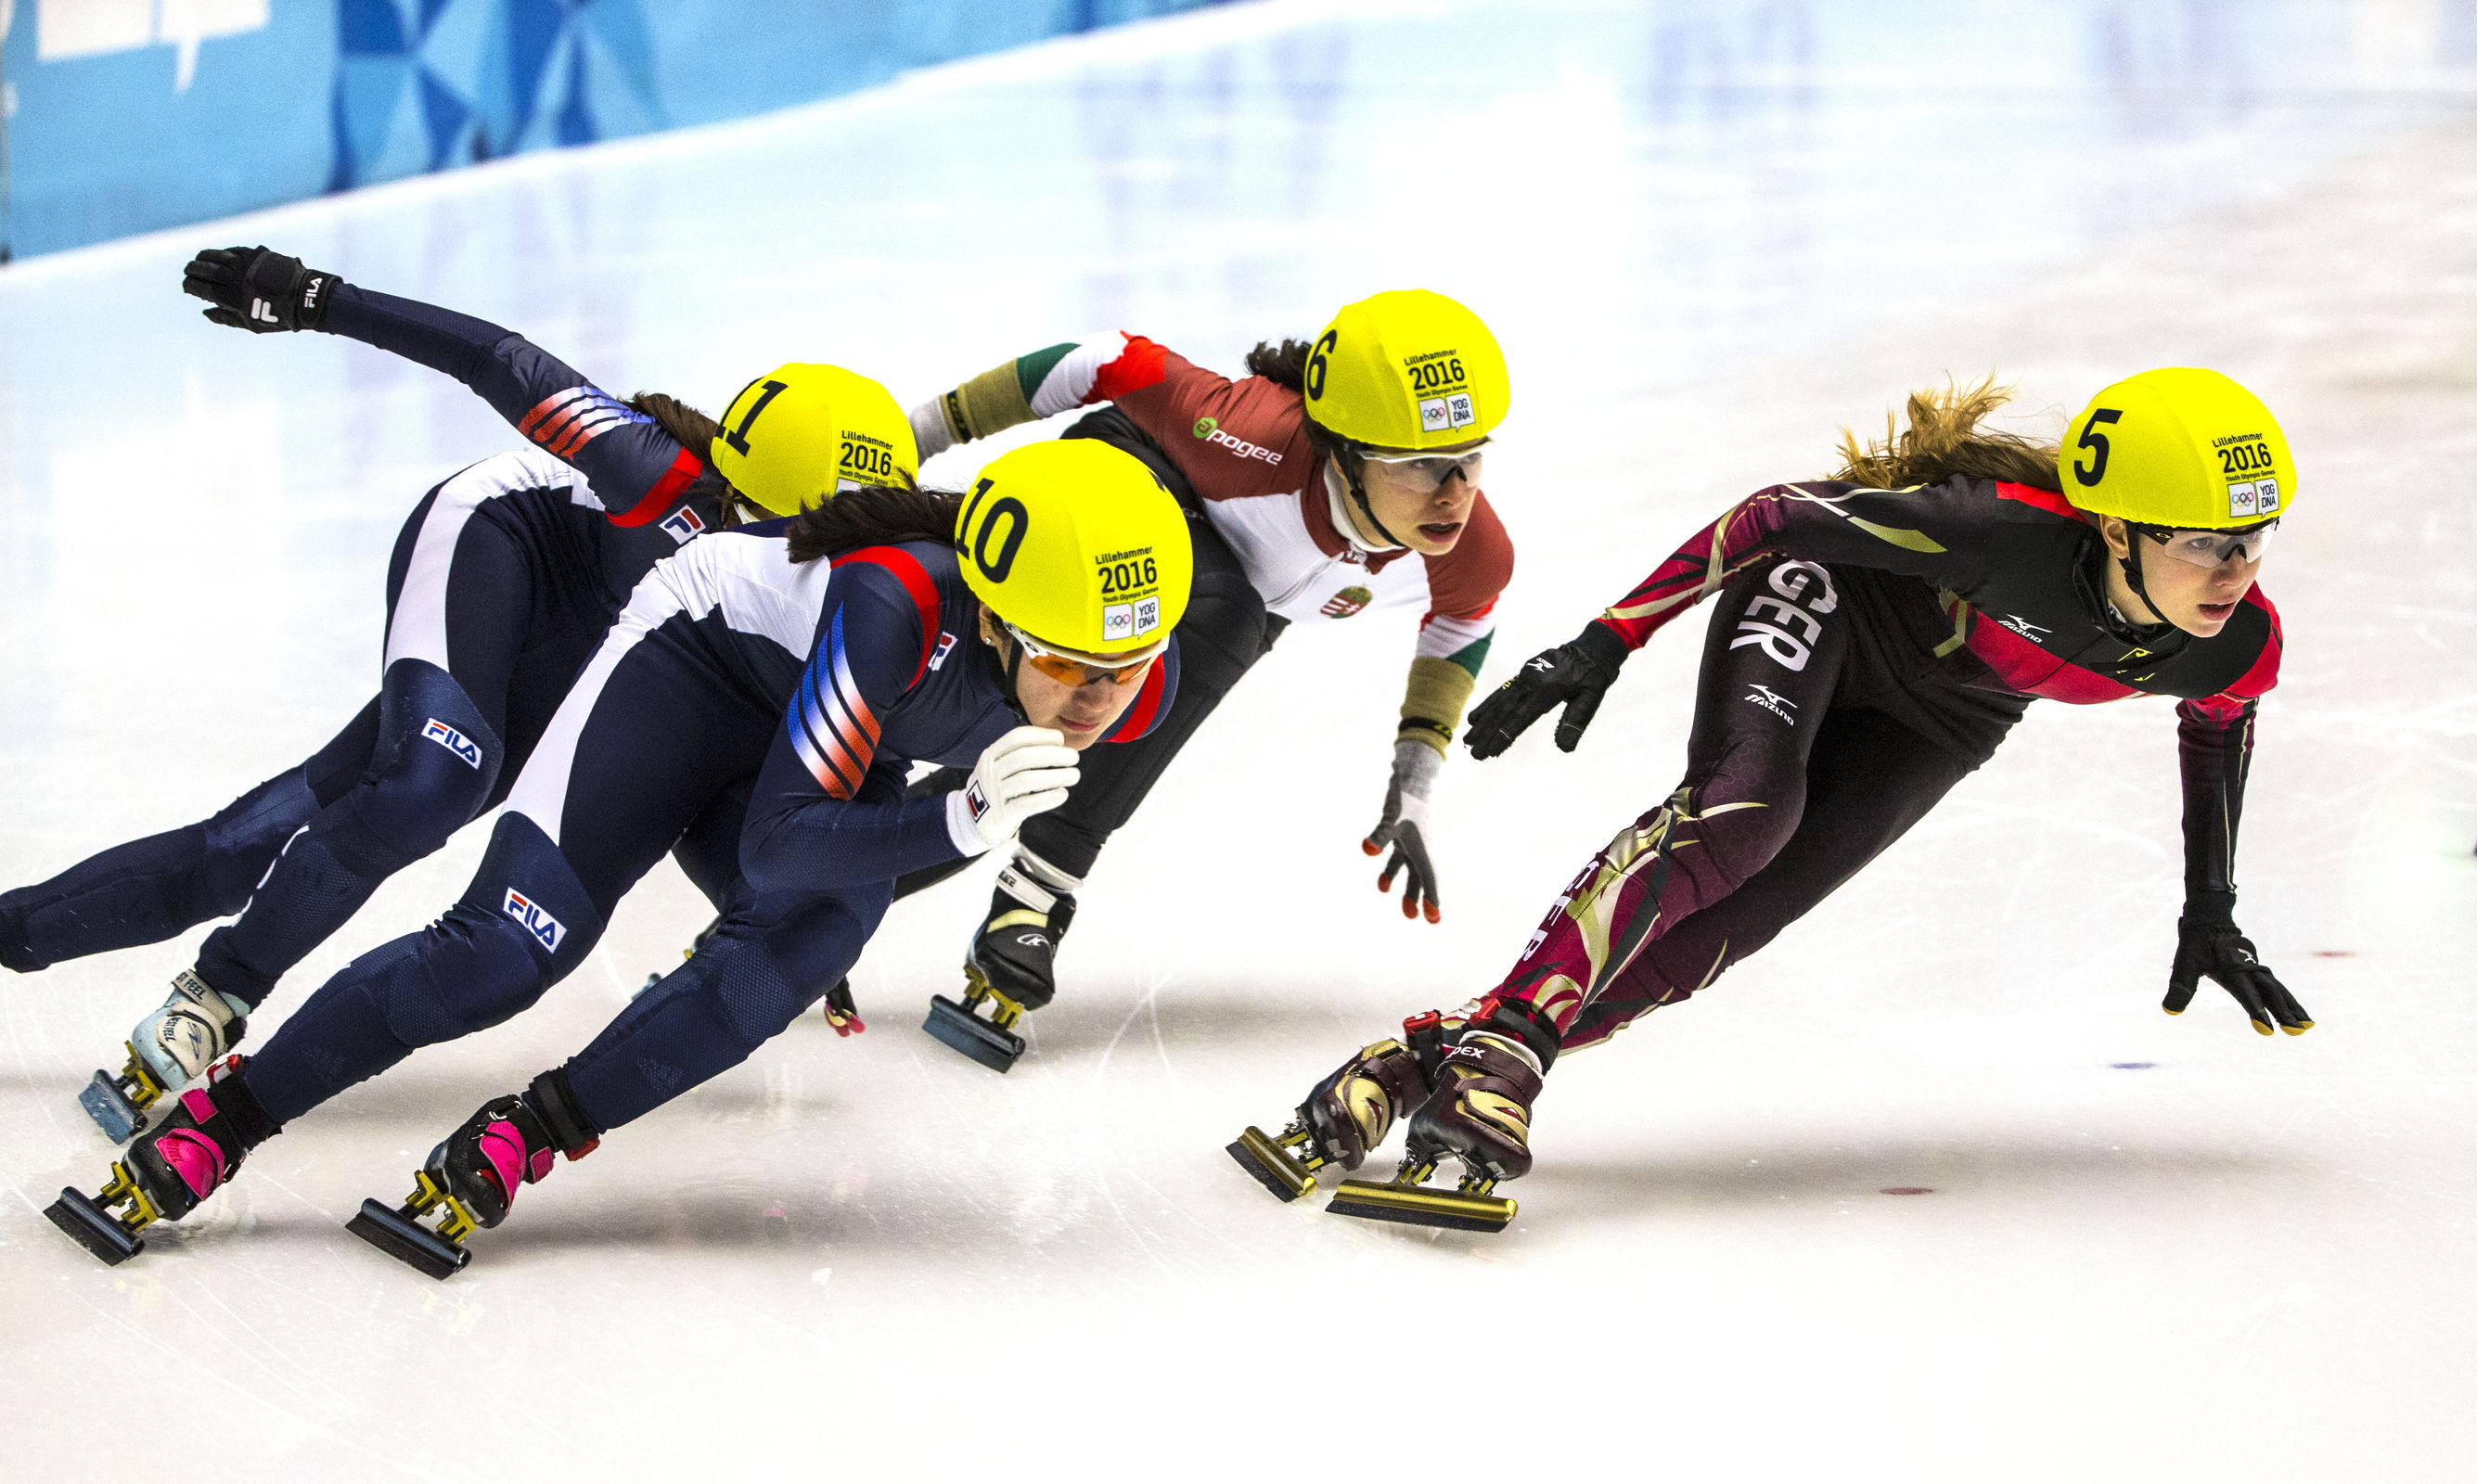 Short Track Speed Skating 1000m Ladies